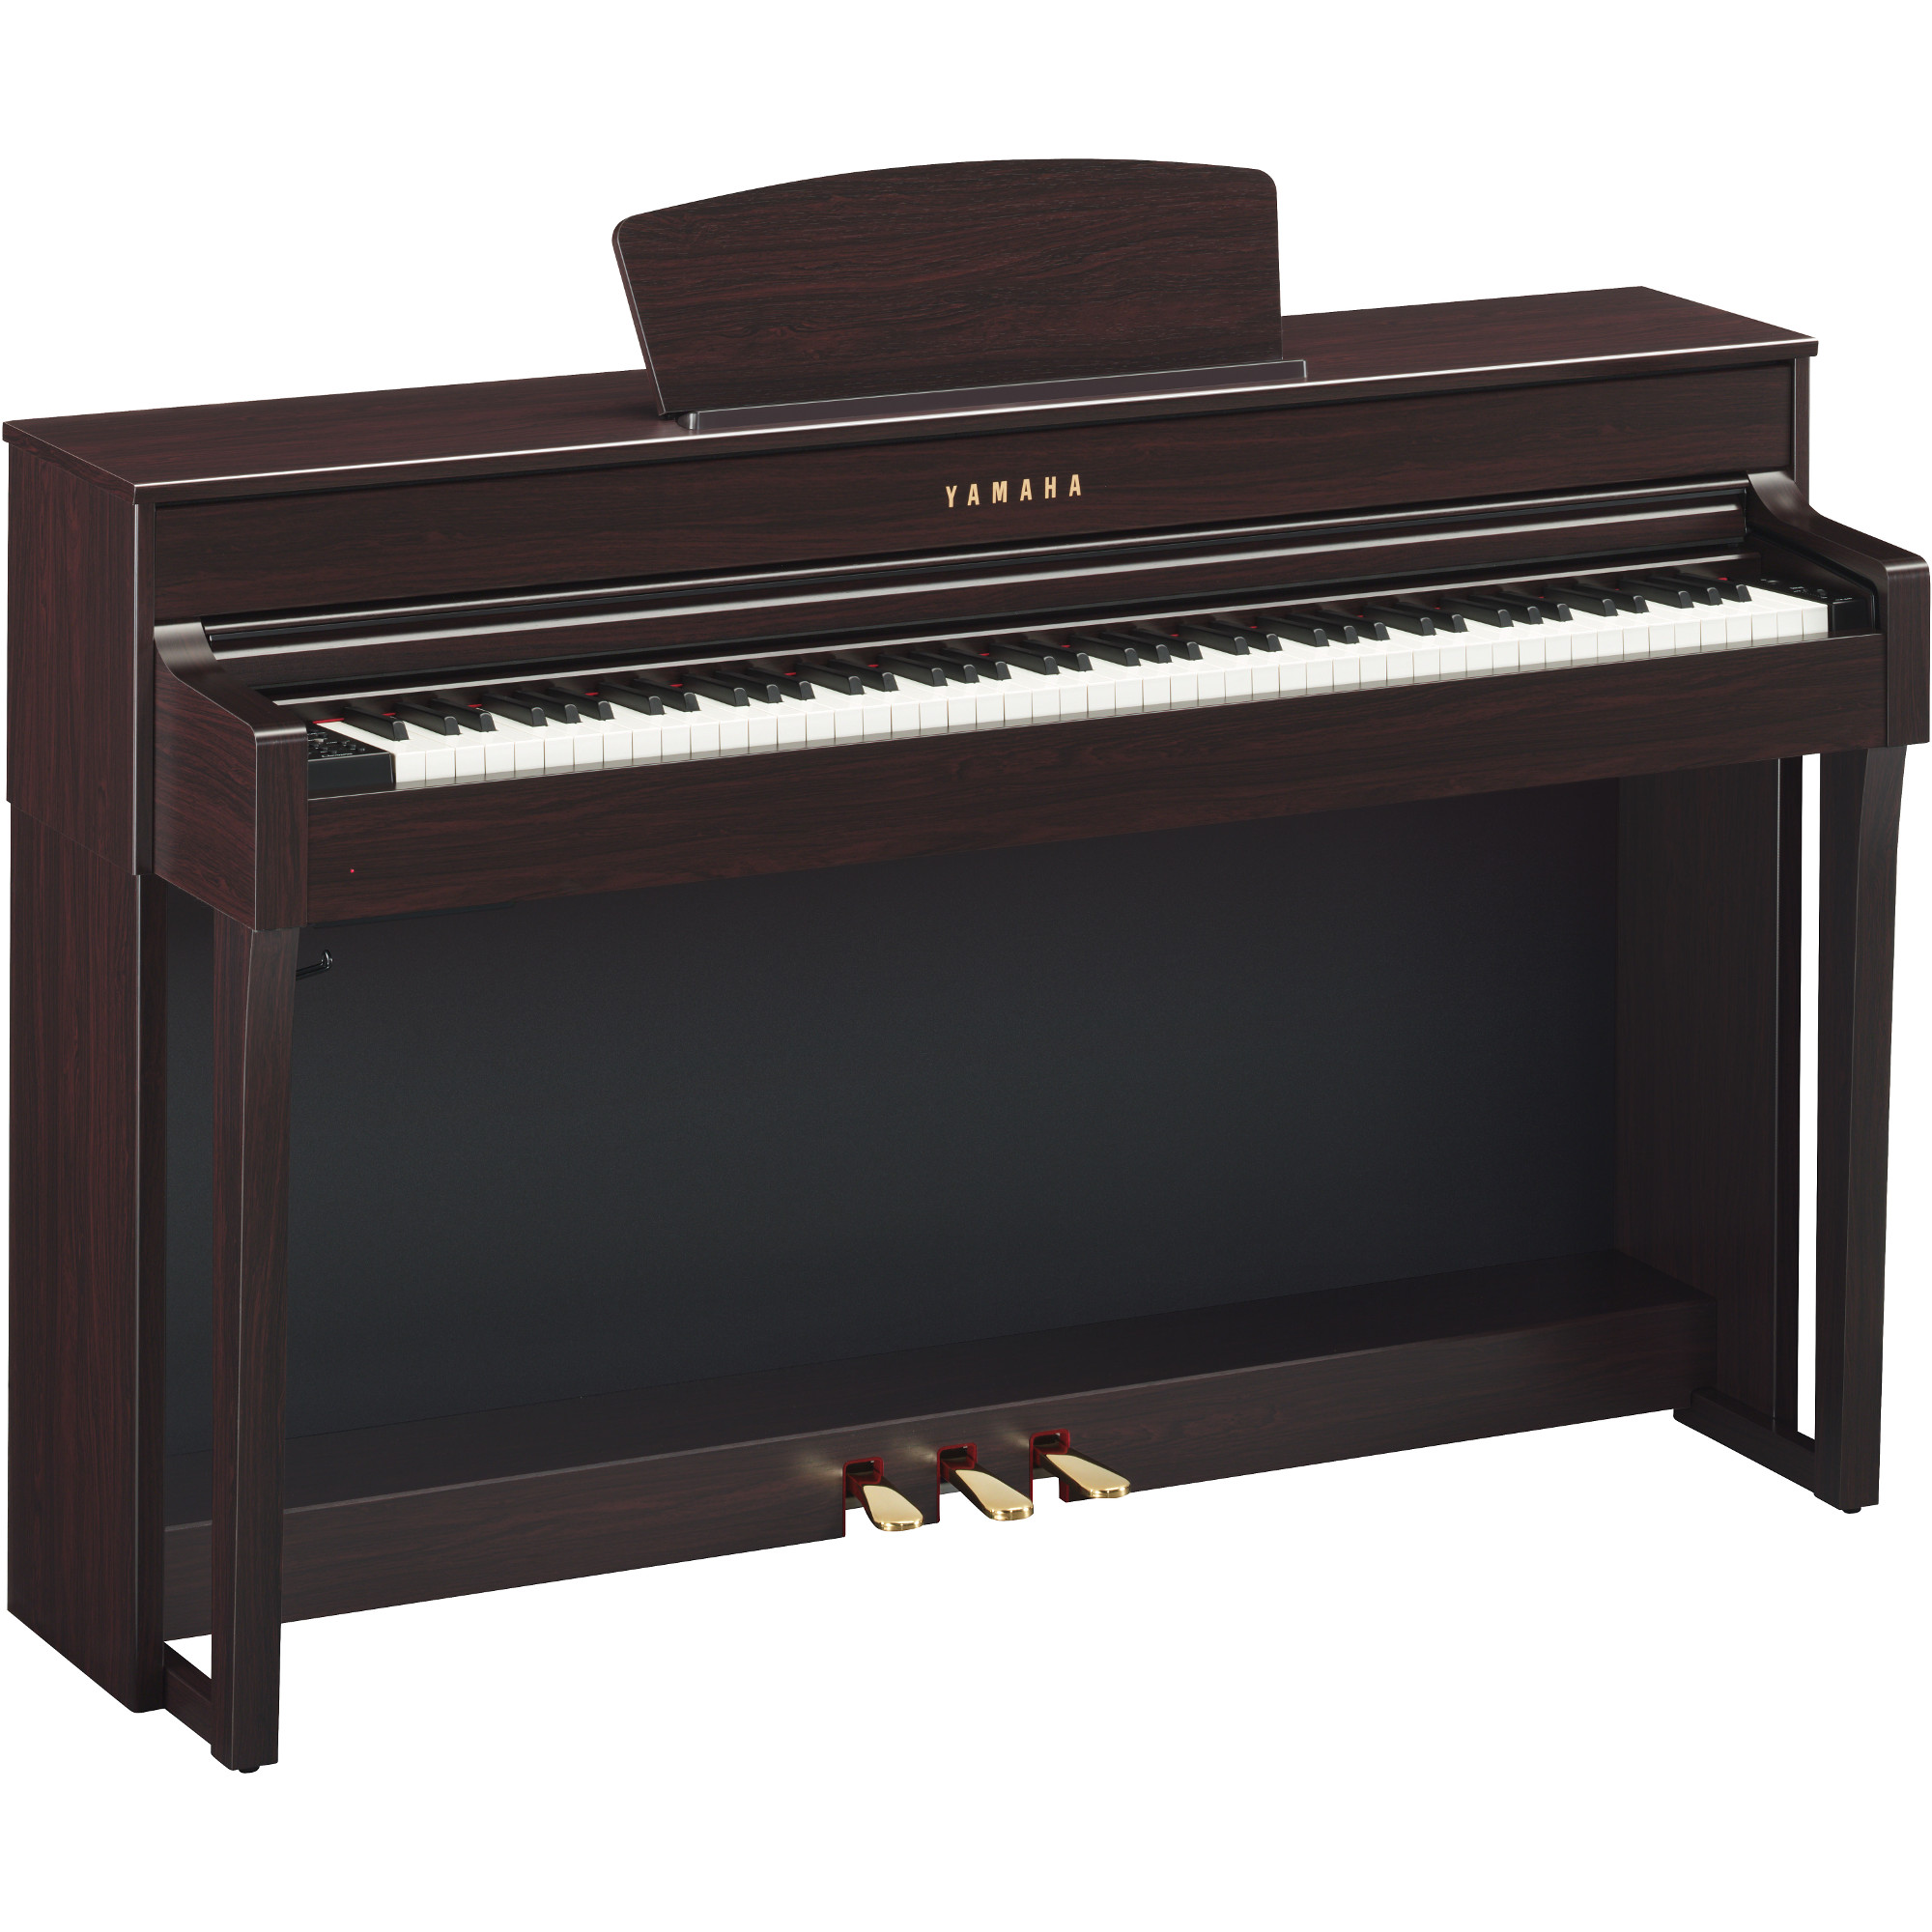 yamaha clp 635r clavinova e piano dunkelbraun kaufen. Black Bedroom Furniture Sets. Home Design Ideas